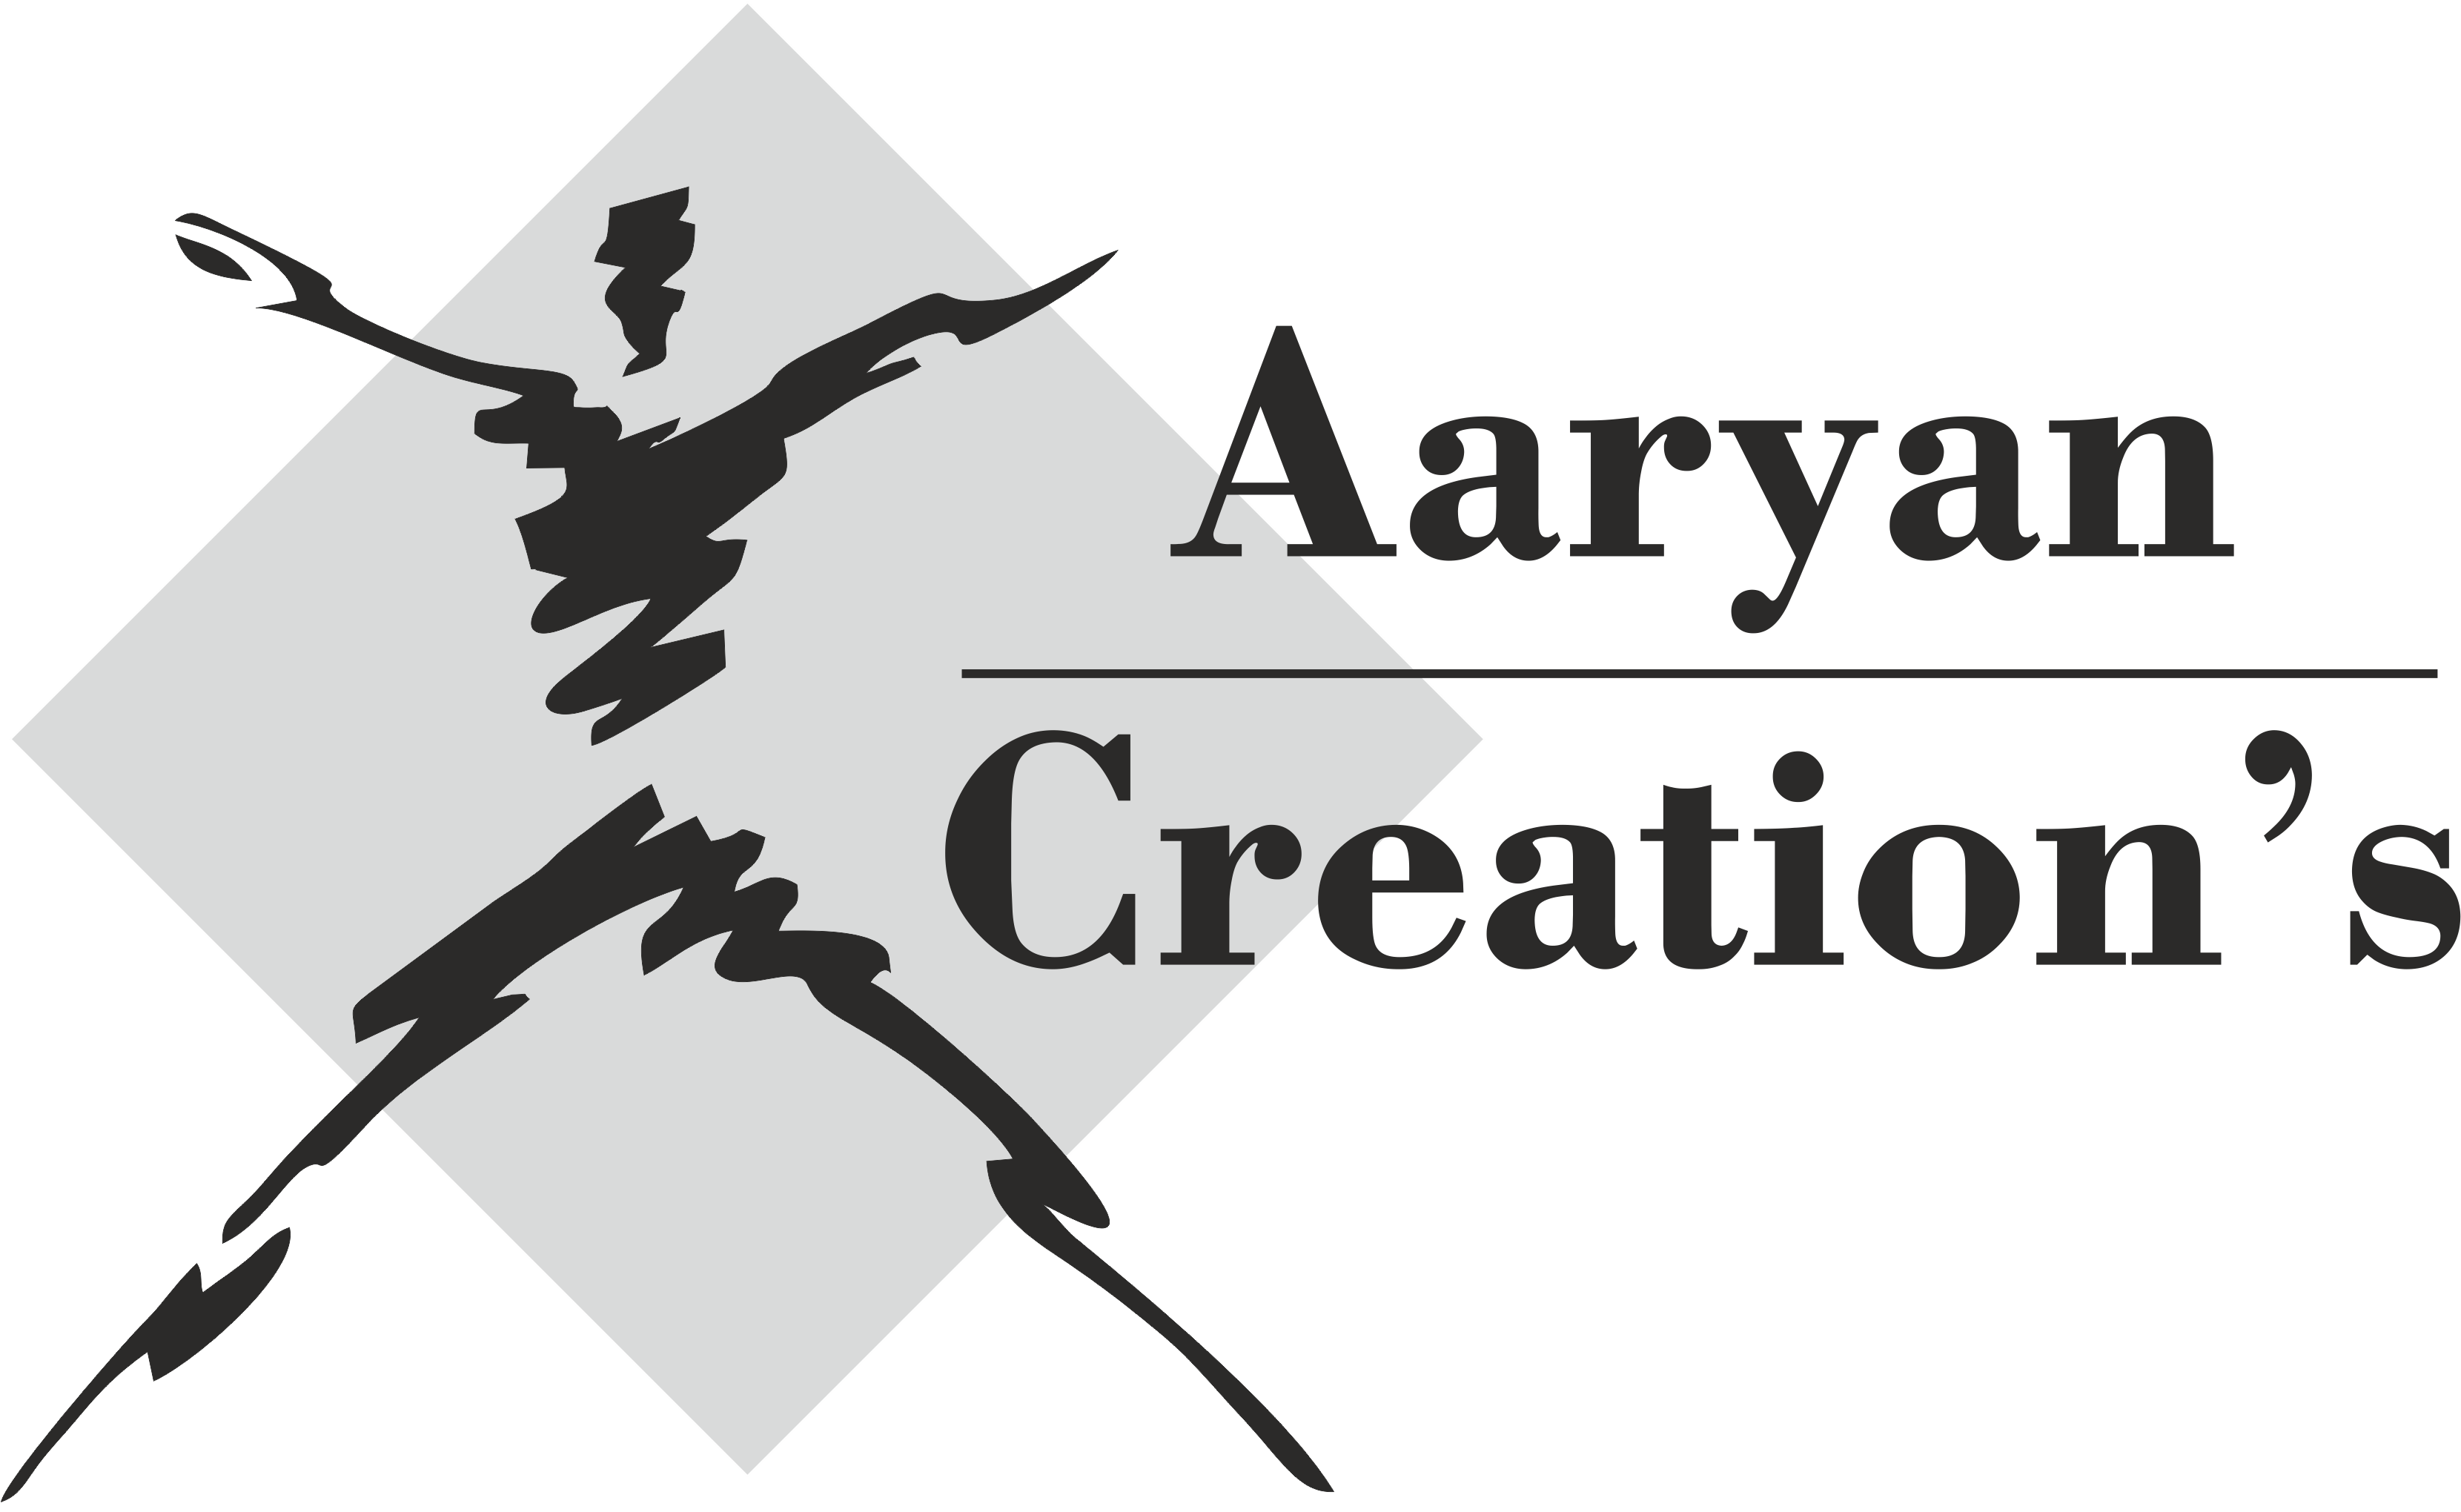 Aaryan Creation's